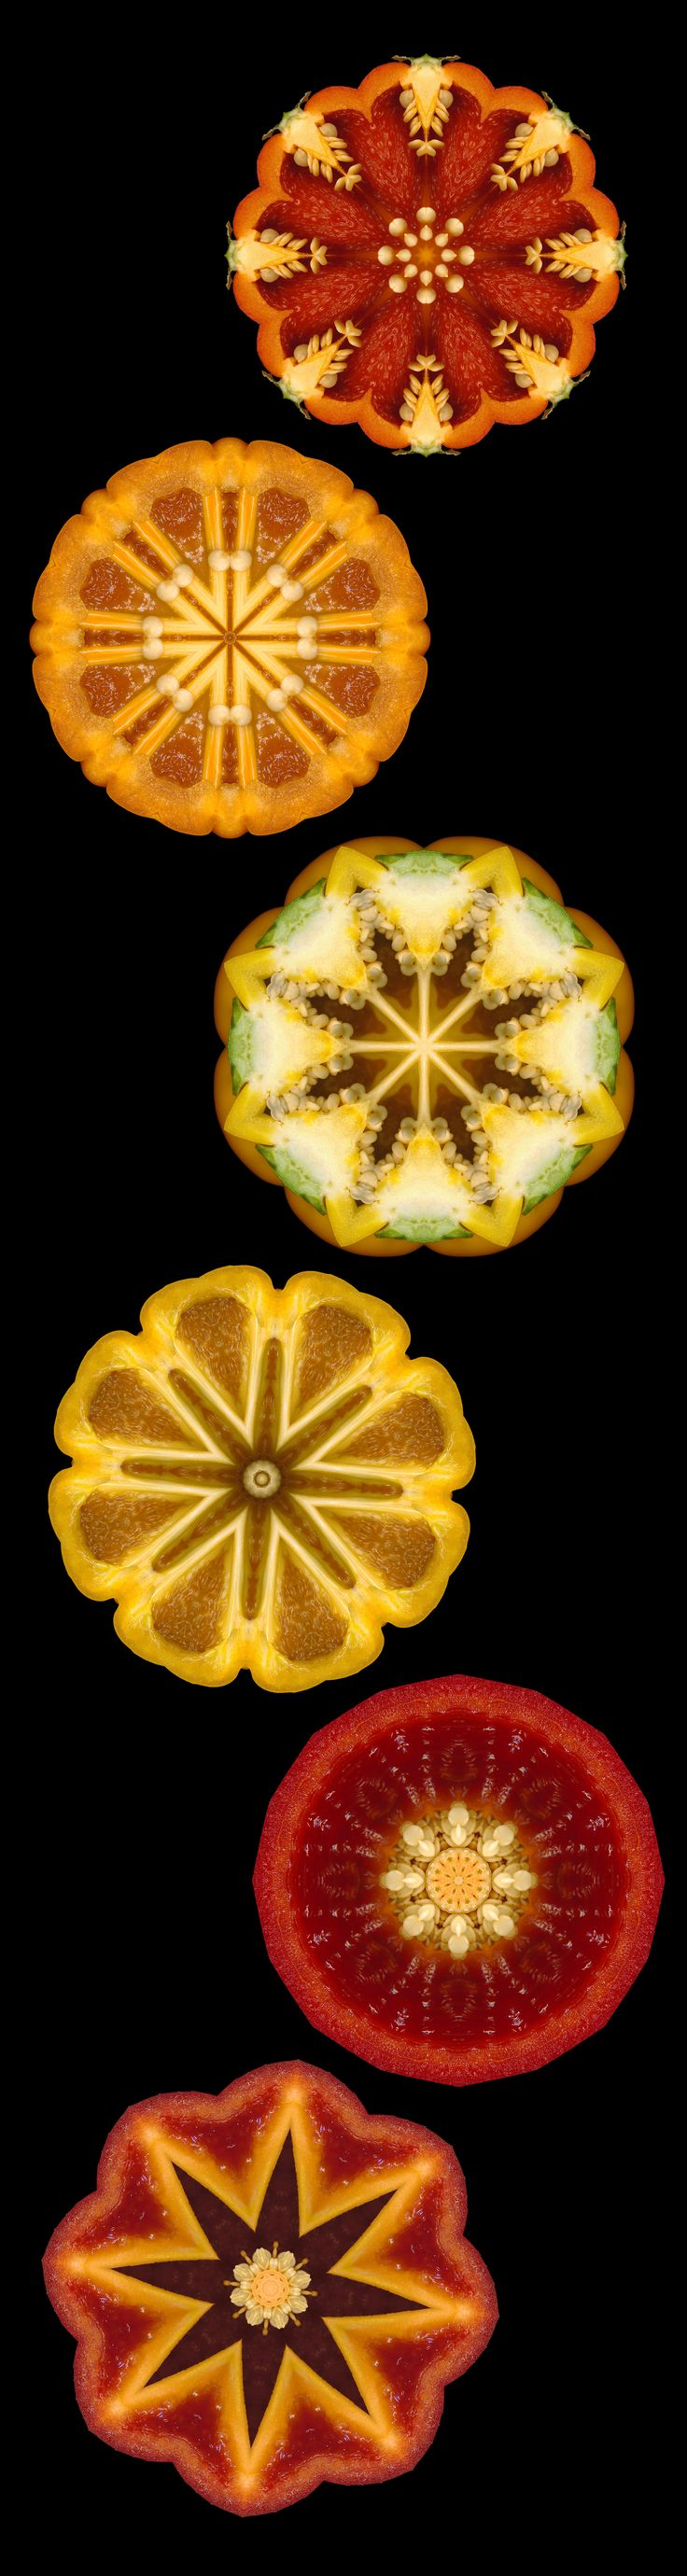 Kaleidoscans | Sash Segal | kaleidoscope images made from scanned bell peppers